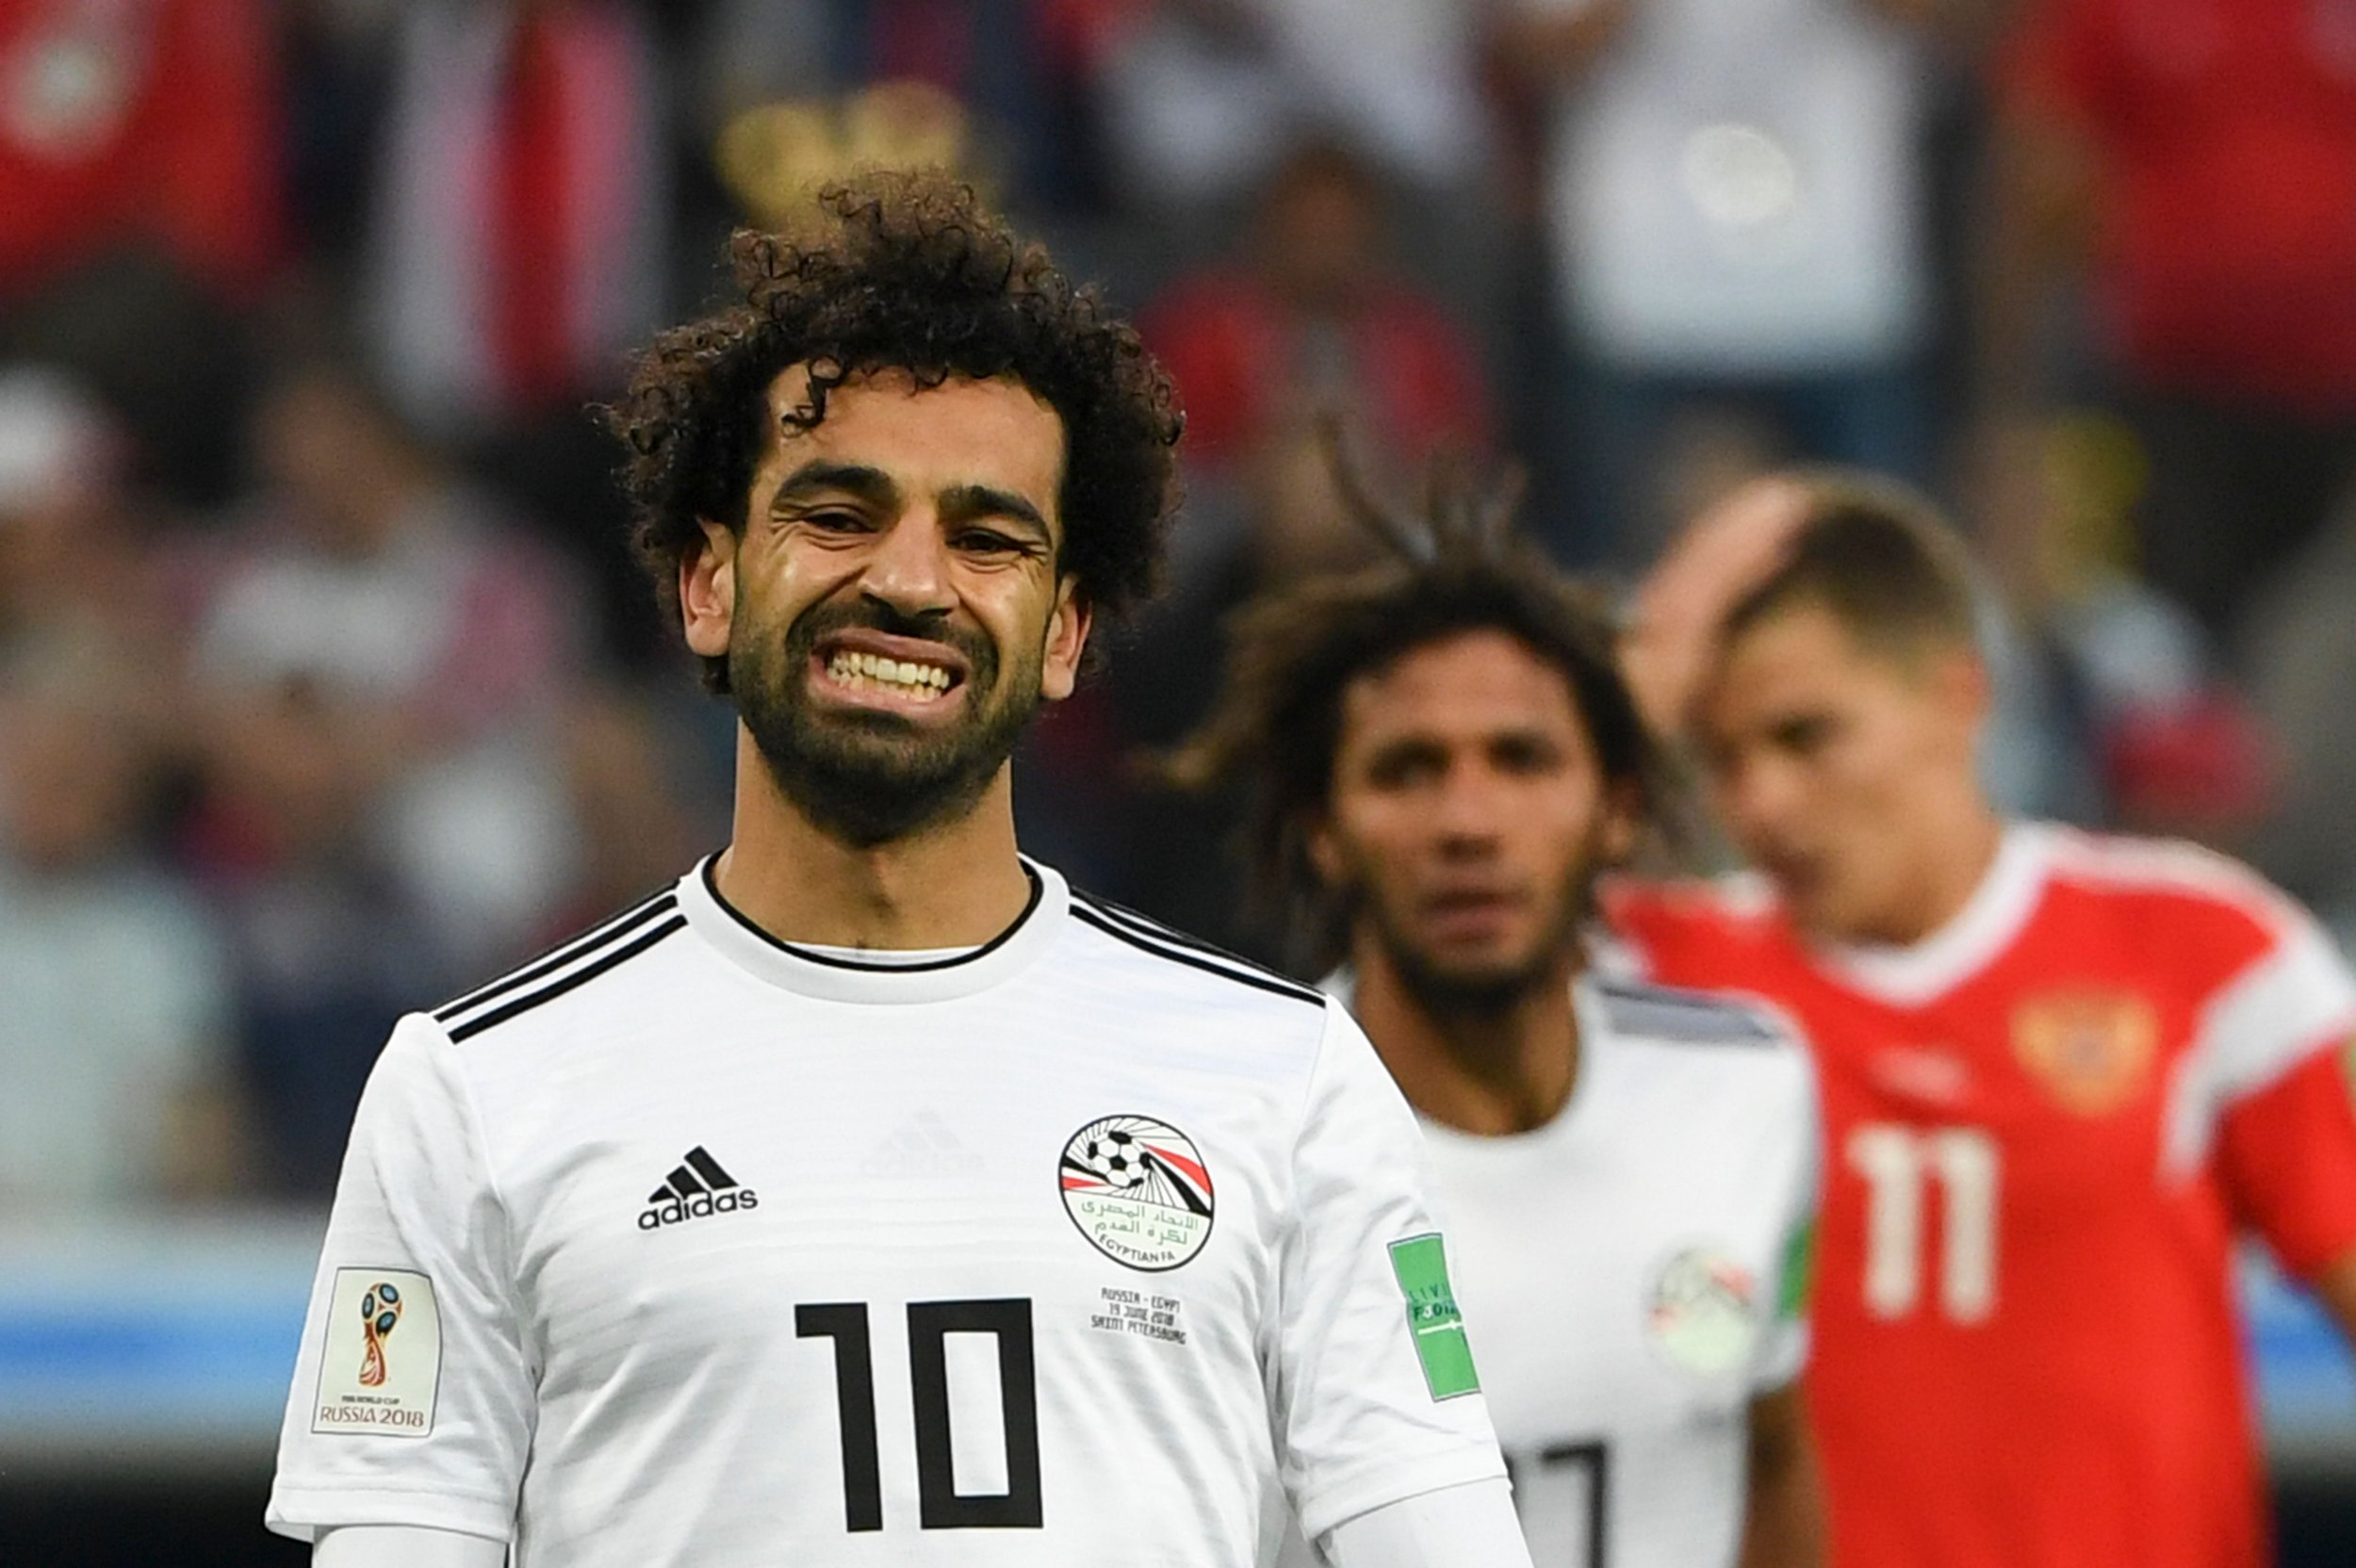 Egypt's forward Mohamed Salah reacts during the Russia 2018 World Cup Group A football match between Russia and Egypt at the Saint Petersburg Stadium in Saint Petersburg on June 19, 2018. / AFP PHOTO / Paul ELLIS / RESTRICTED TO EDITORIAL USE - NO MOBILE PUSH ALERTS/DOWNLOADSPAUL ELLIS/AFP/Getty Images